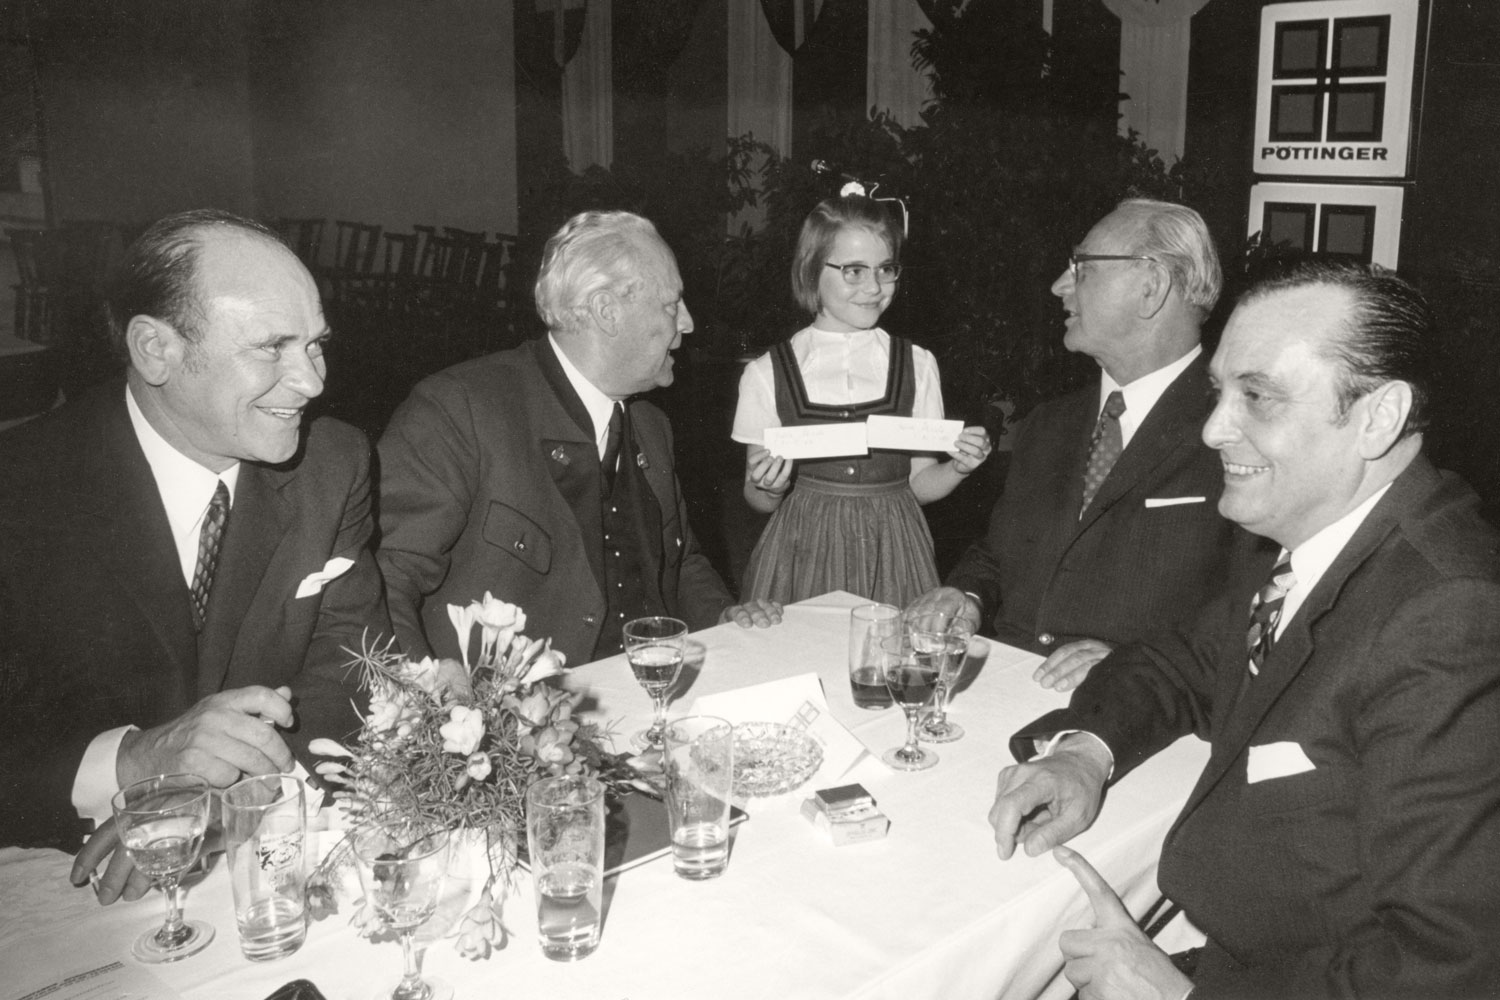 President Franz Jonas (second from the right) pays attention to the little lady at the table.